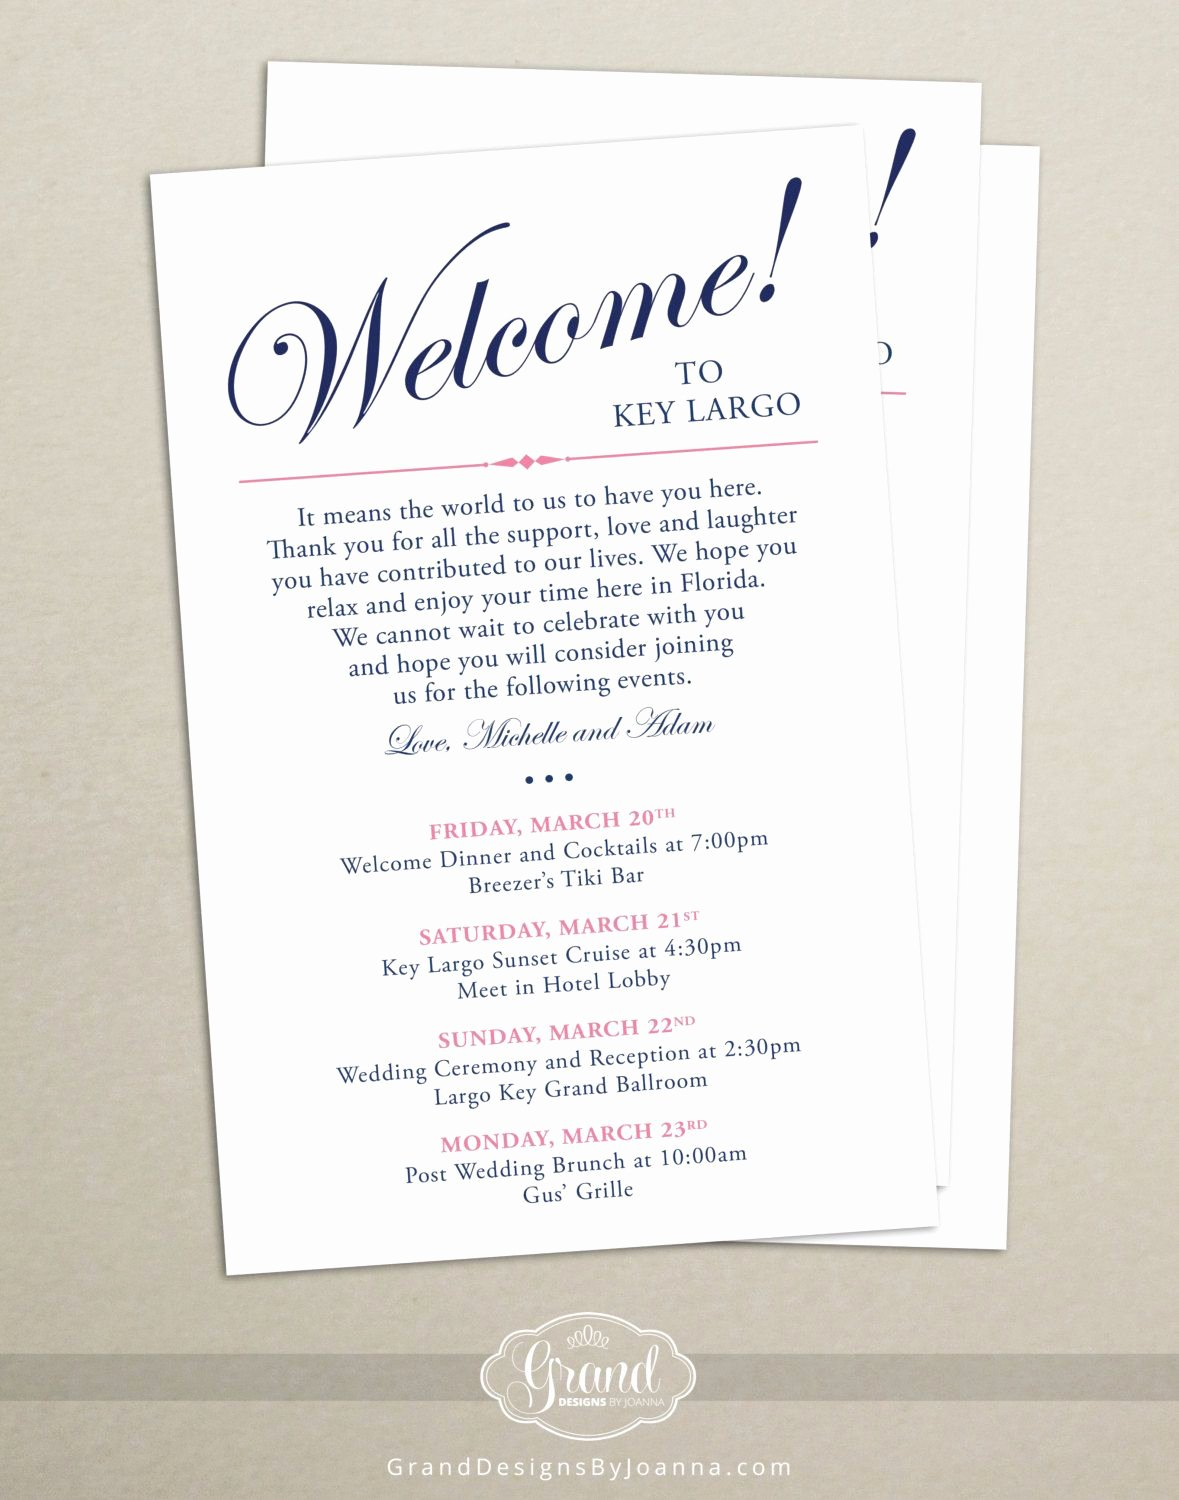 Wedding Hotel Welcome Letter Template Fresh Itinerary Cards for Wedding Hotel Wel E Bag Printed